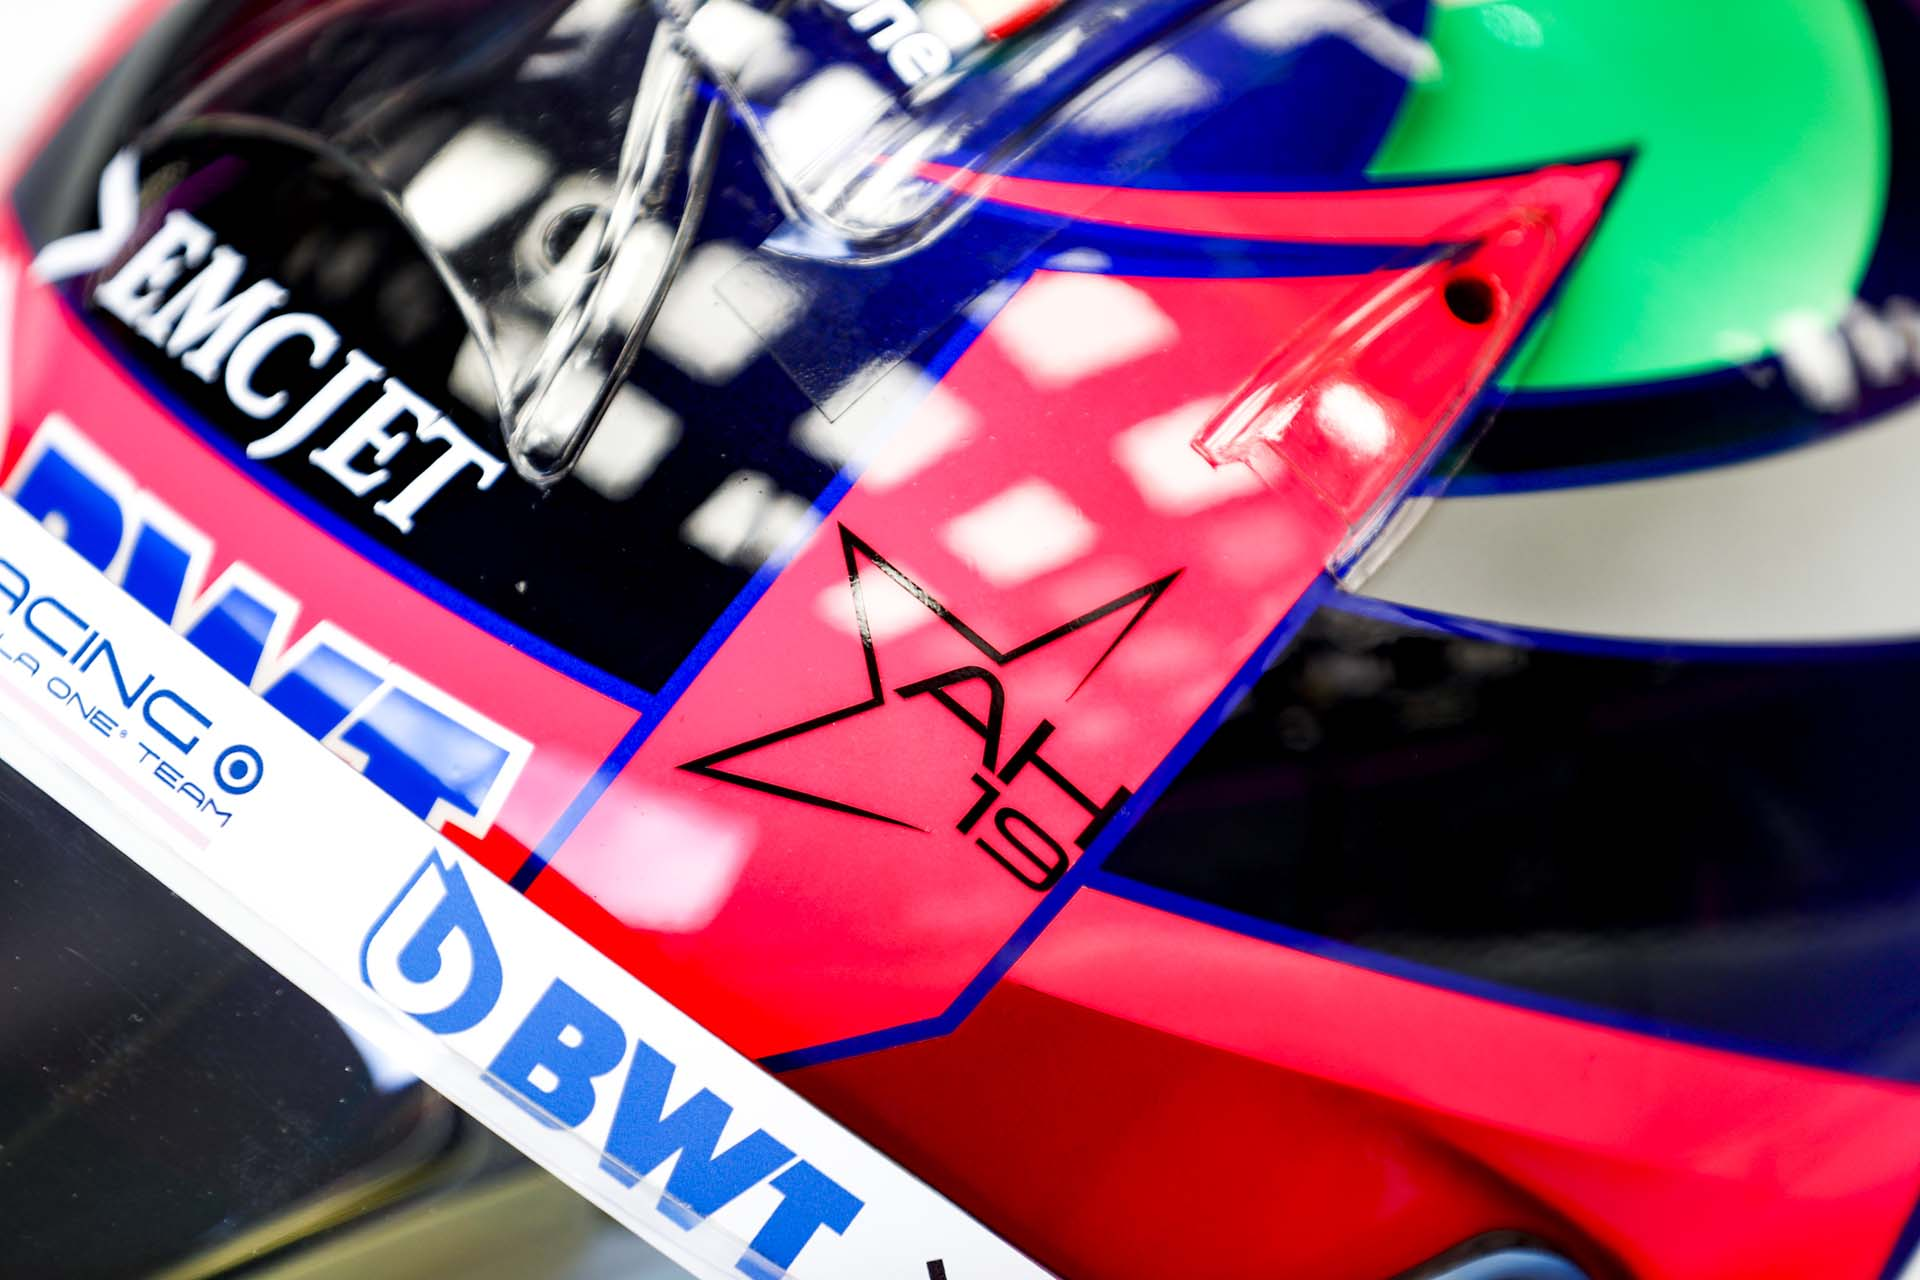 A tribute to Anthoine Hubert on the helmet of Sergio Perez, Racing Point